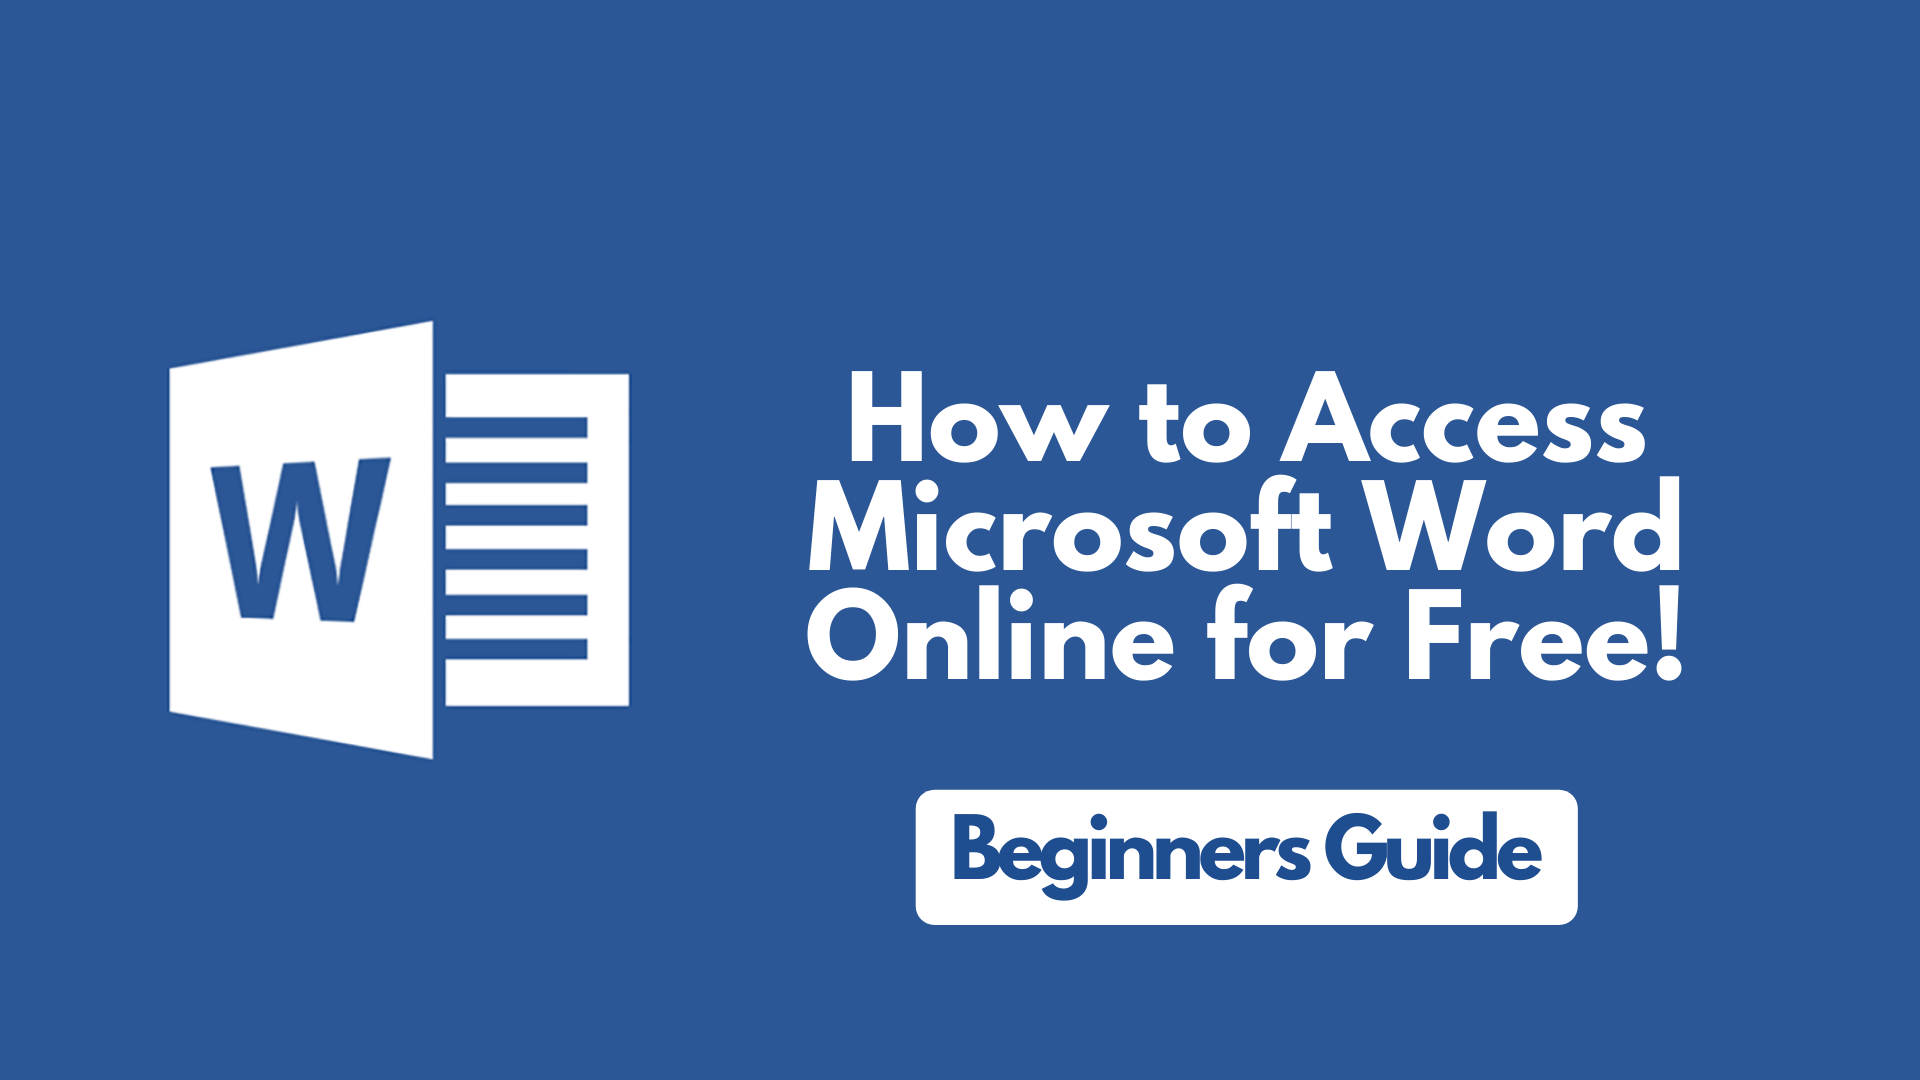 How to Access Microsoft Word Online for Free